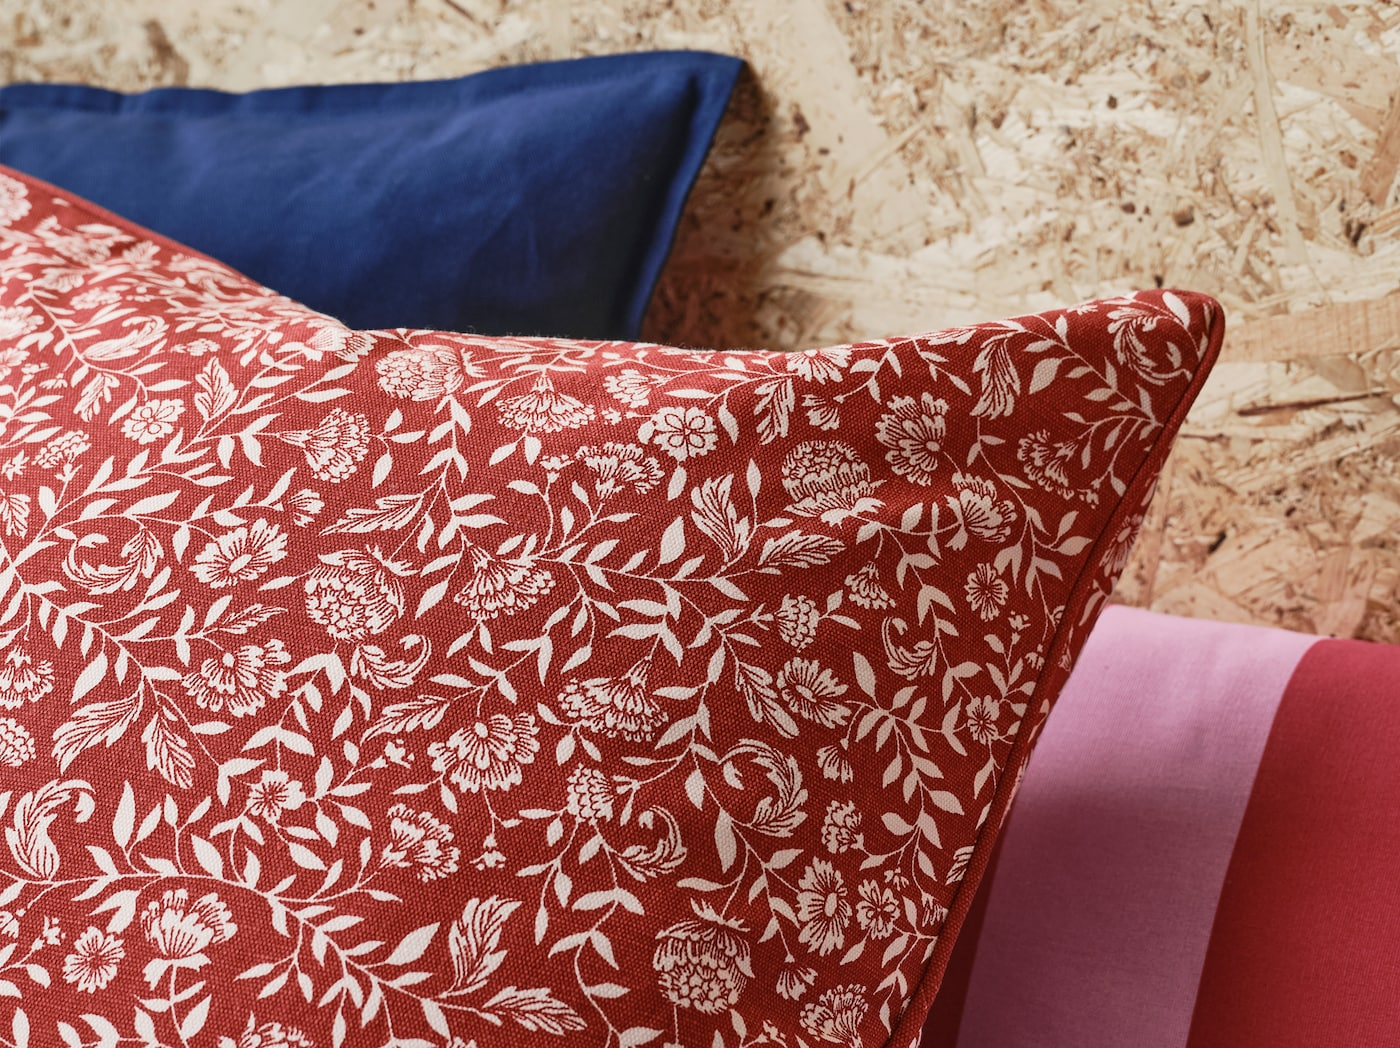 A close-up of EVALOUISE cushion cover featuring a traditional Scandinavian floral pattern in red and white.